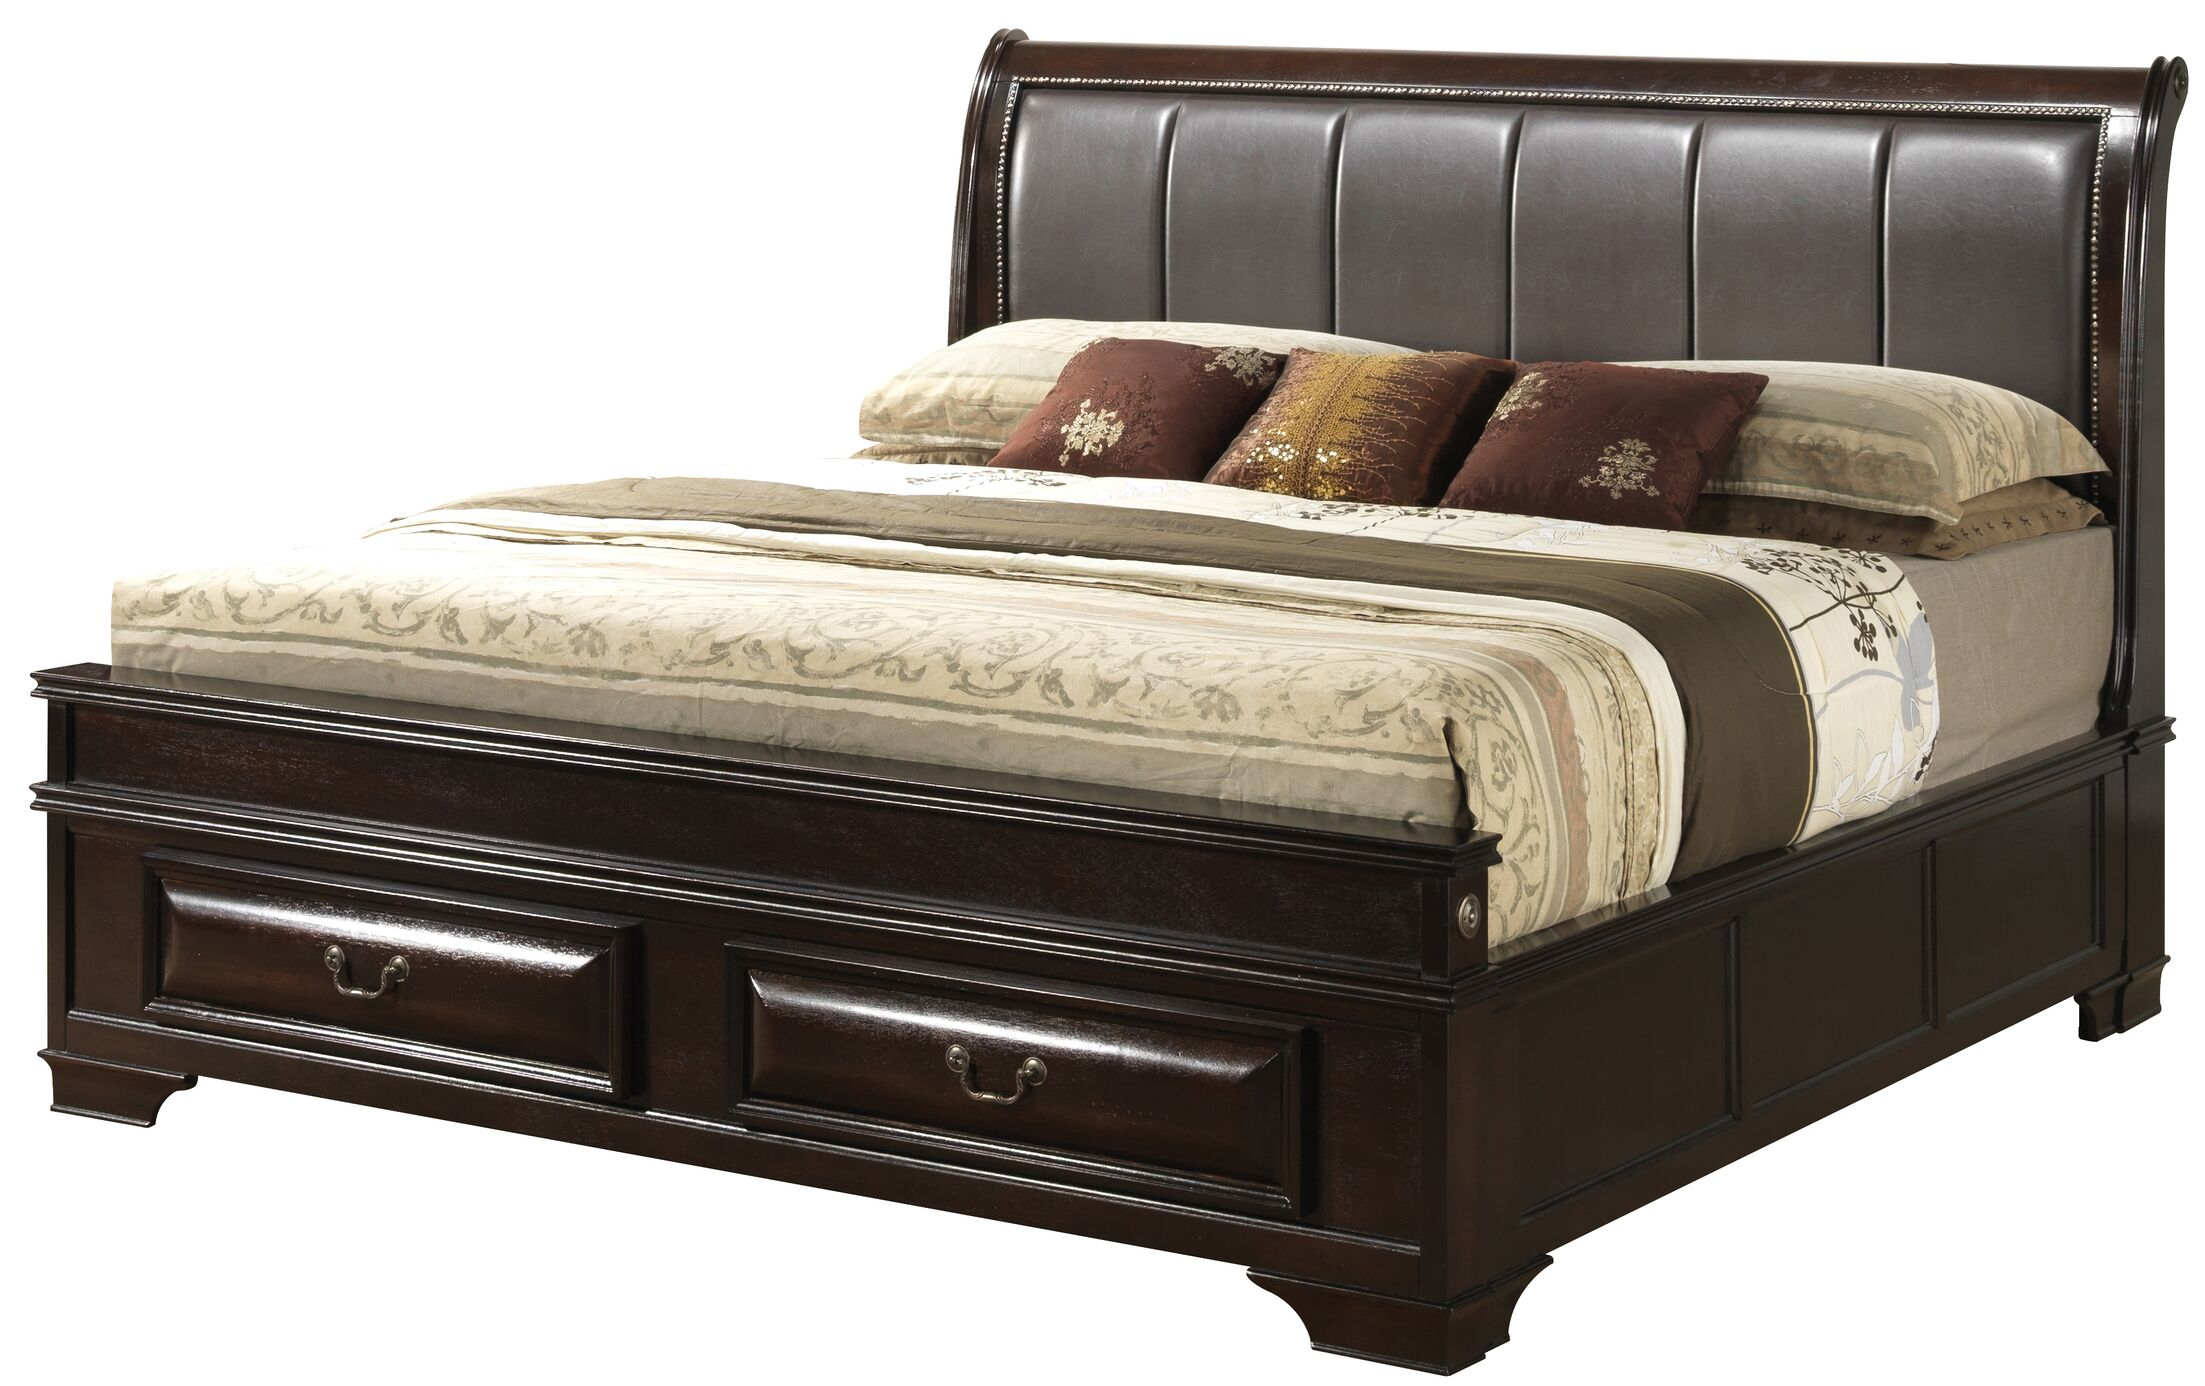 Edwardsville Upholstered Storage Platform Bed Size: Queen, Color: Cappuccino